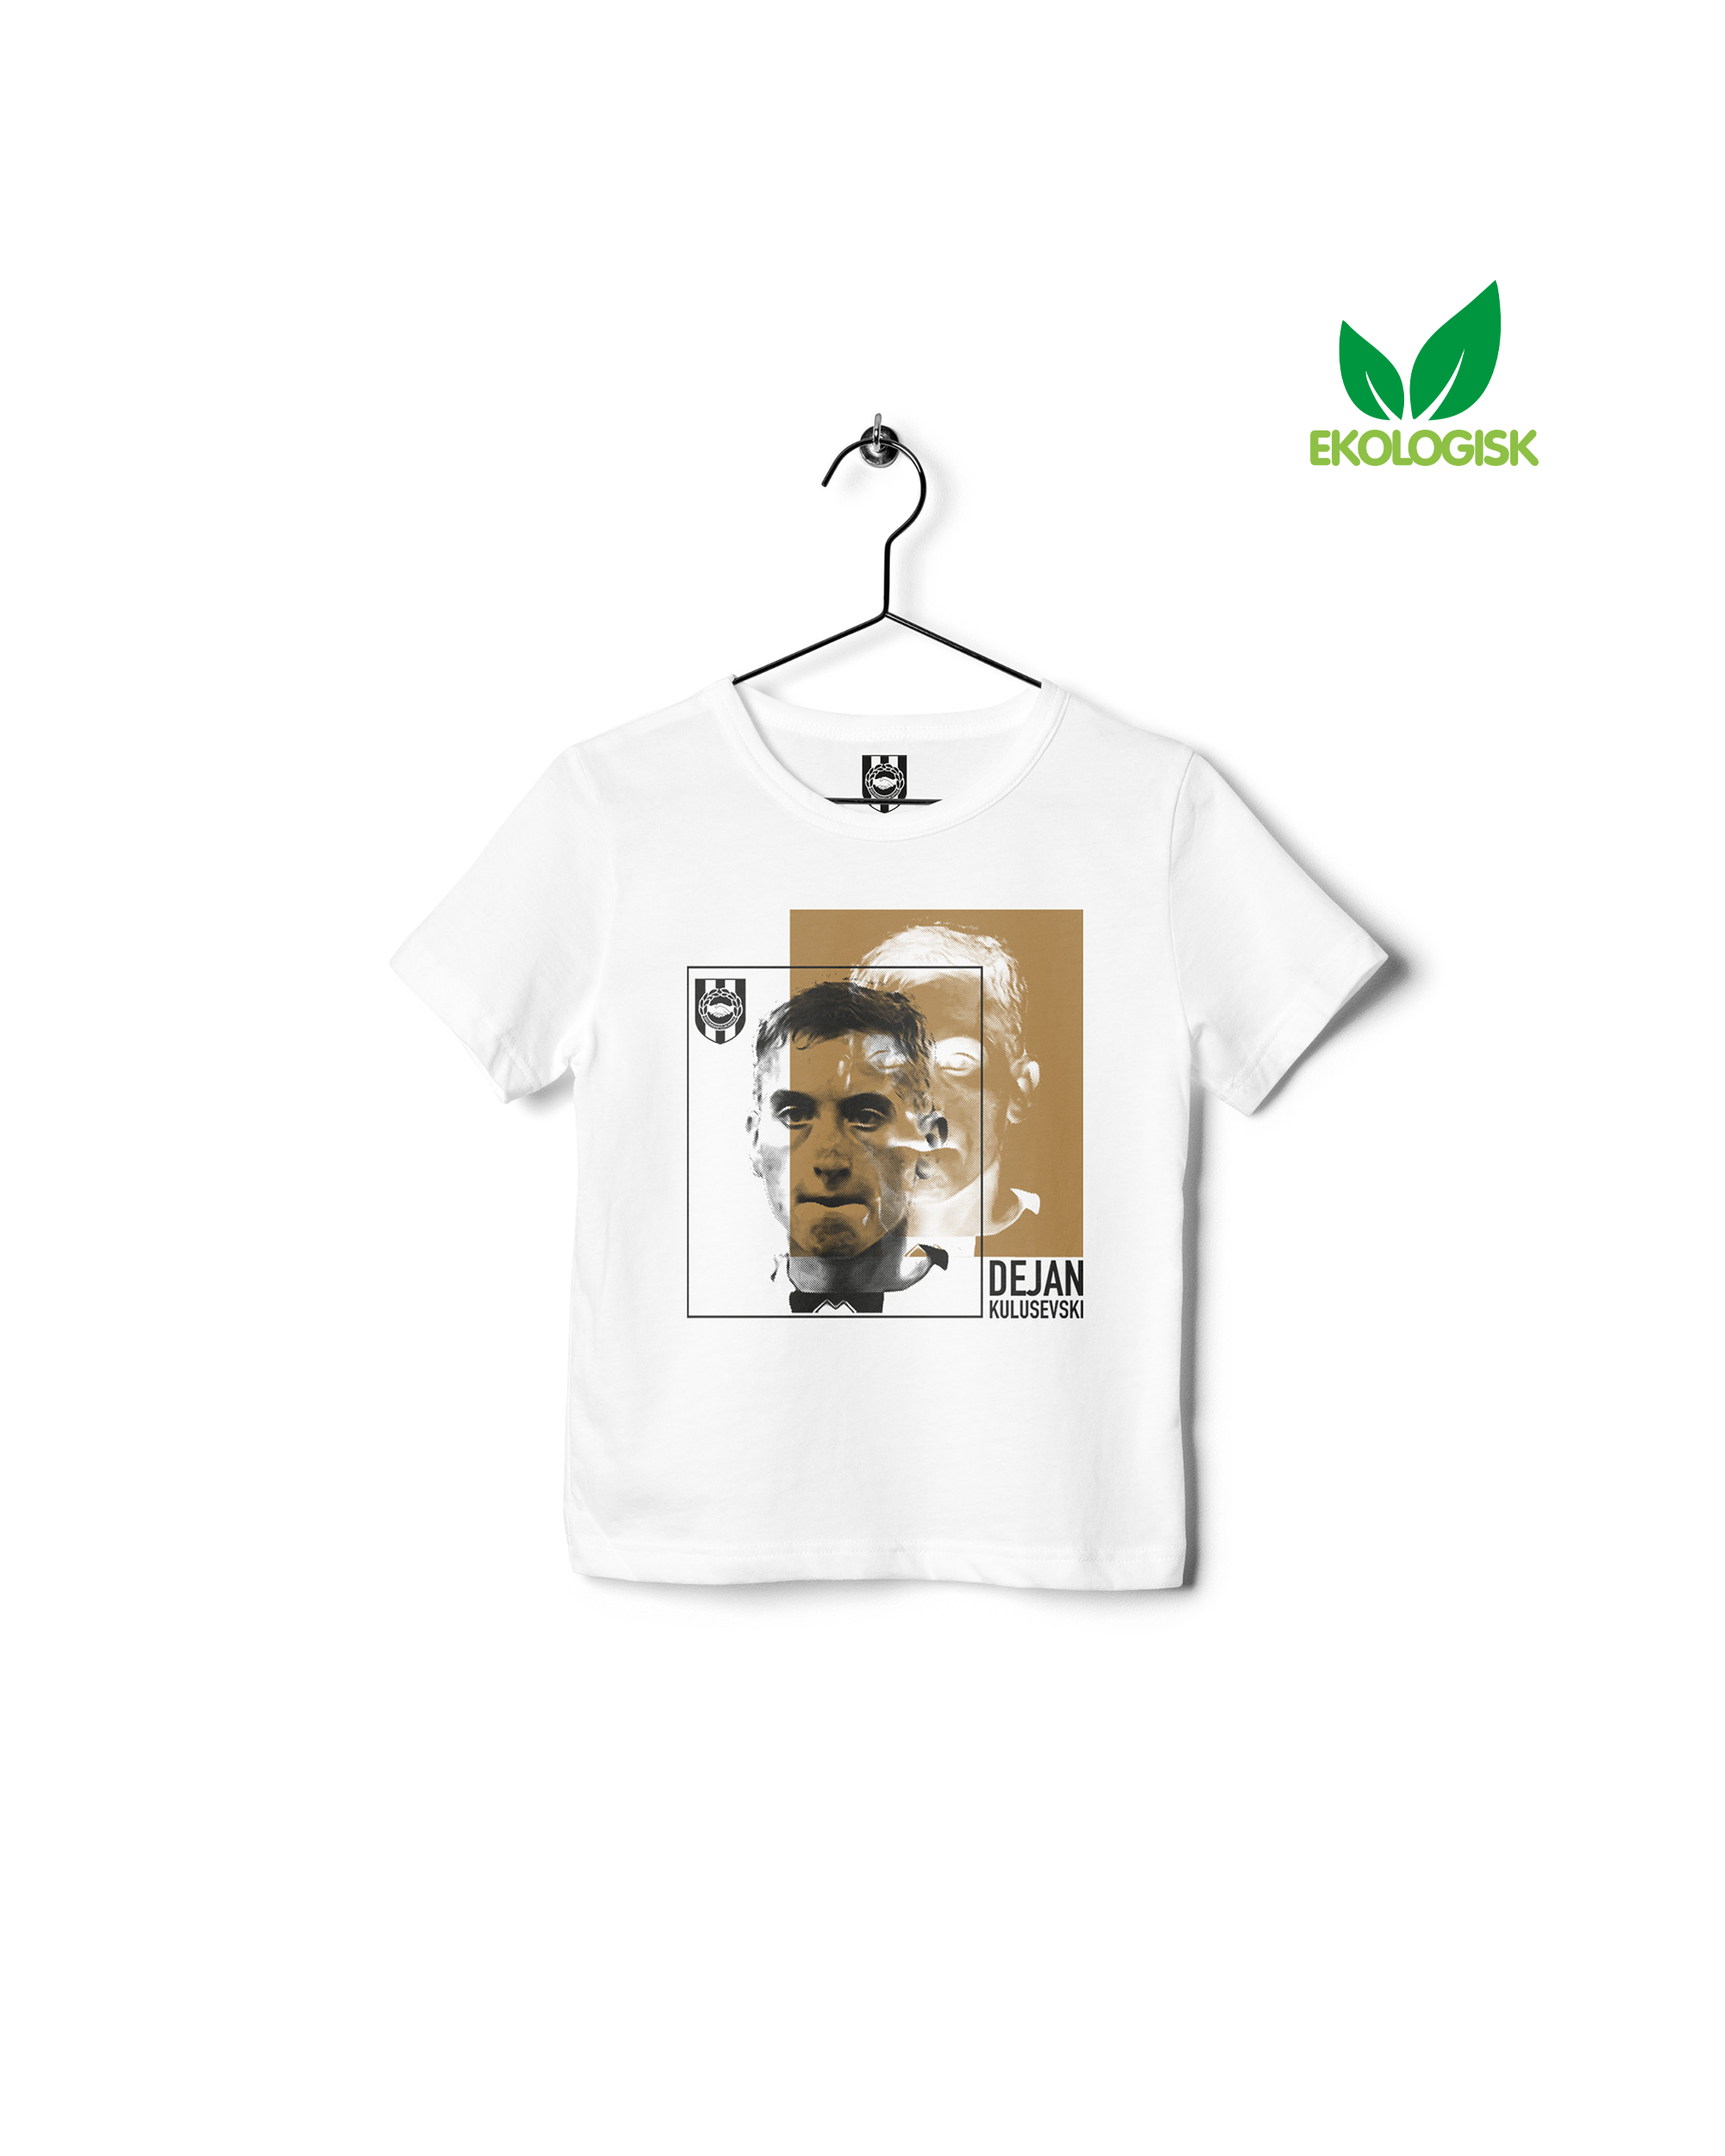 BP Dejan Abstrakt T-shirt - Junior